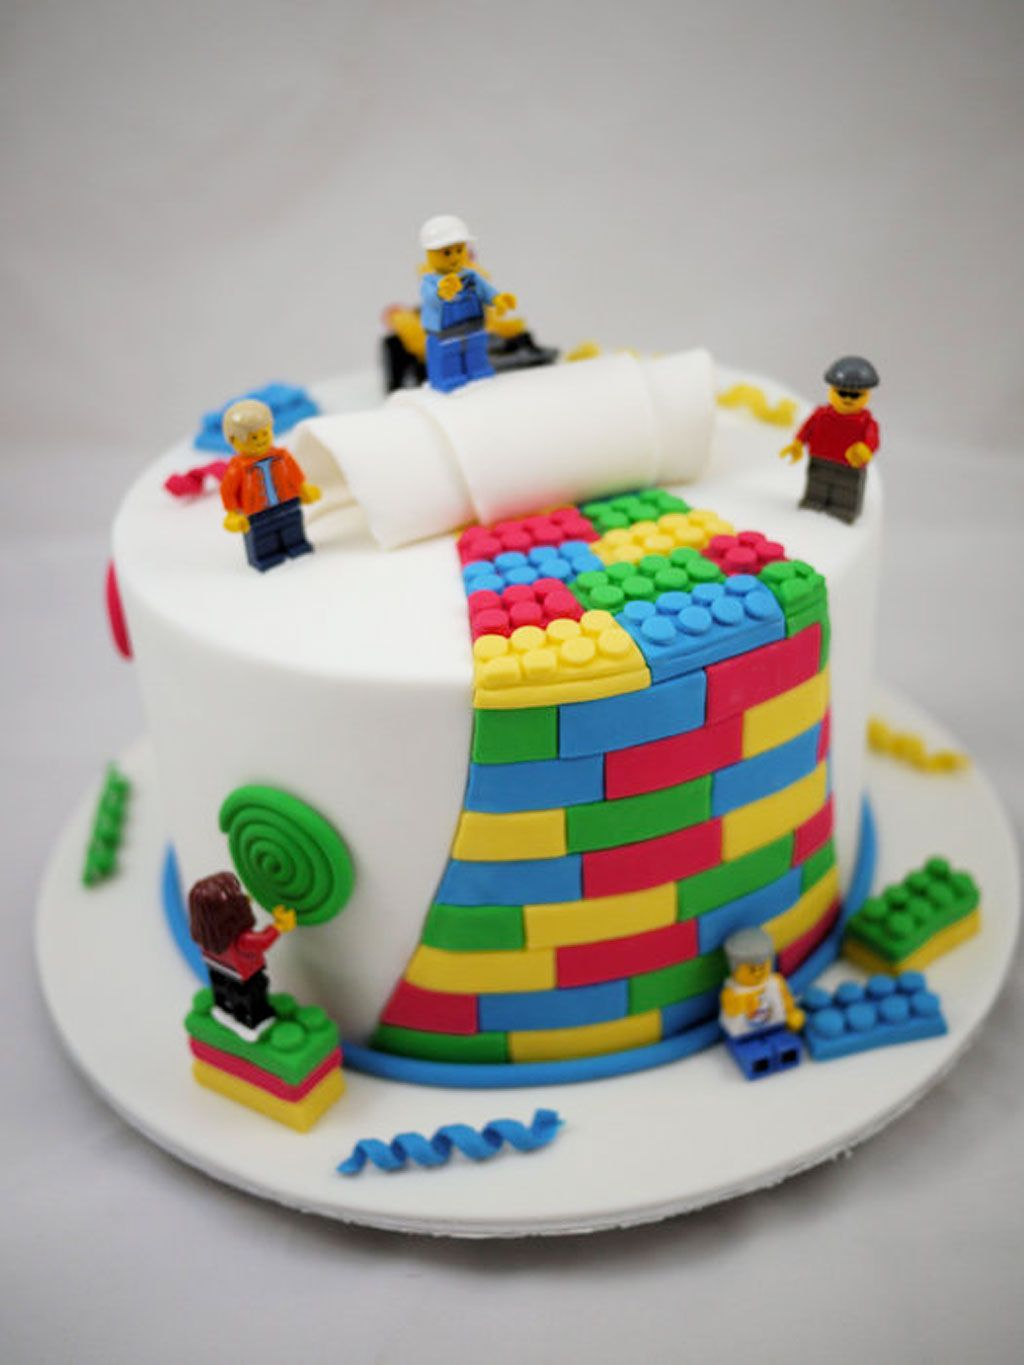 57 LEGO Themed Birthday Party Ideas Perfect for Boys Birthday